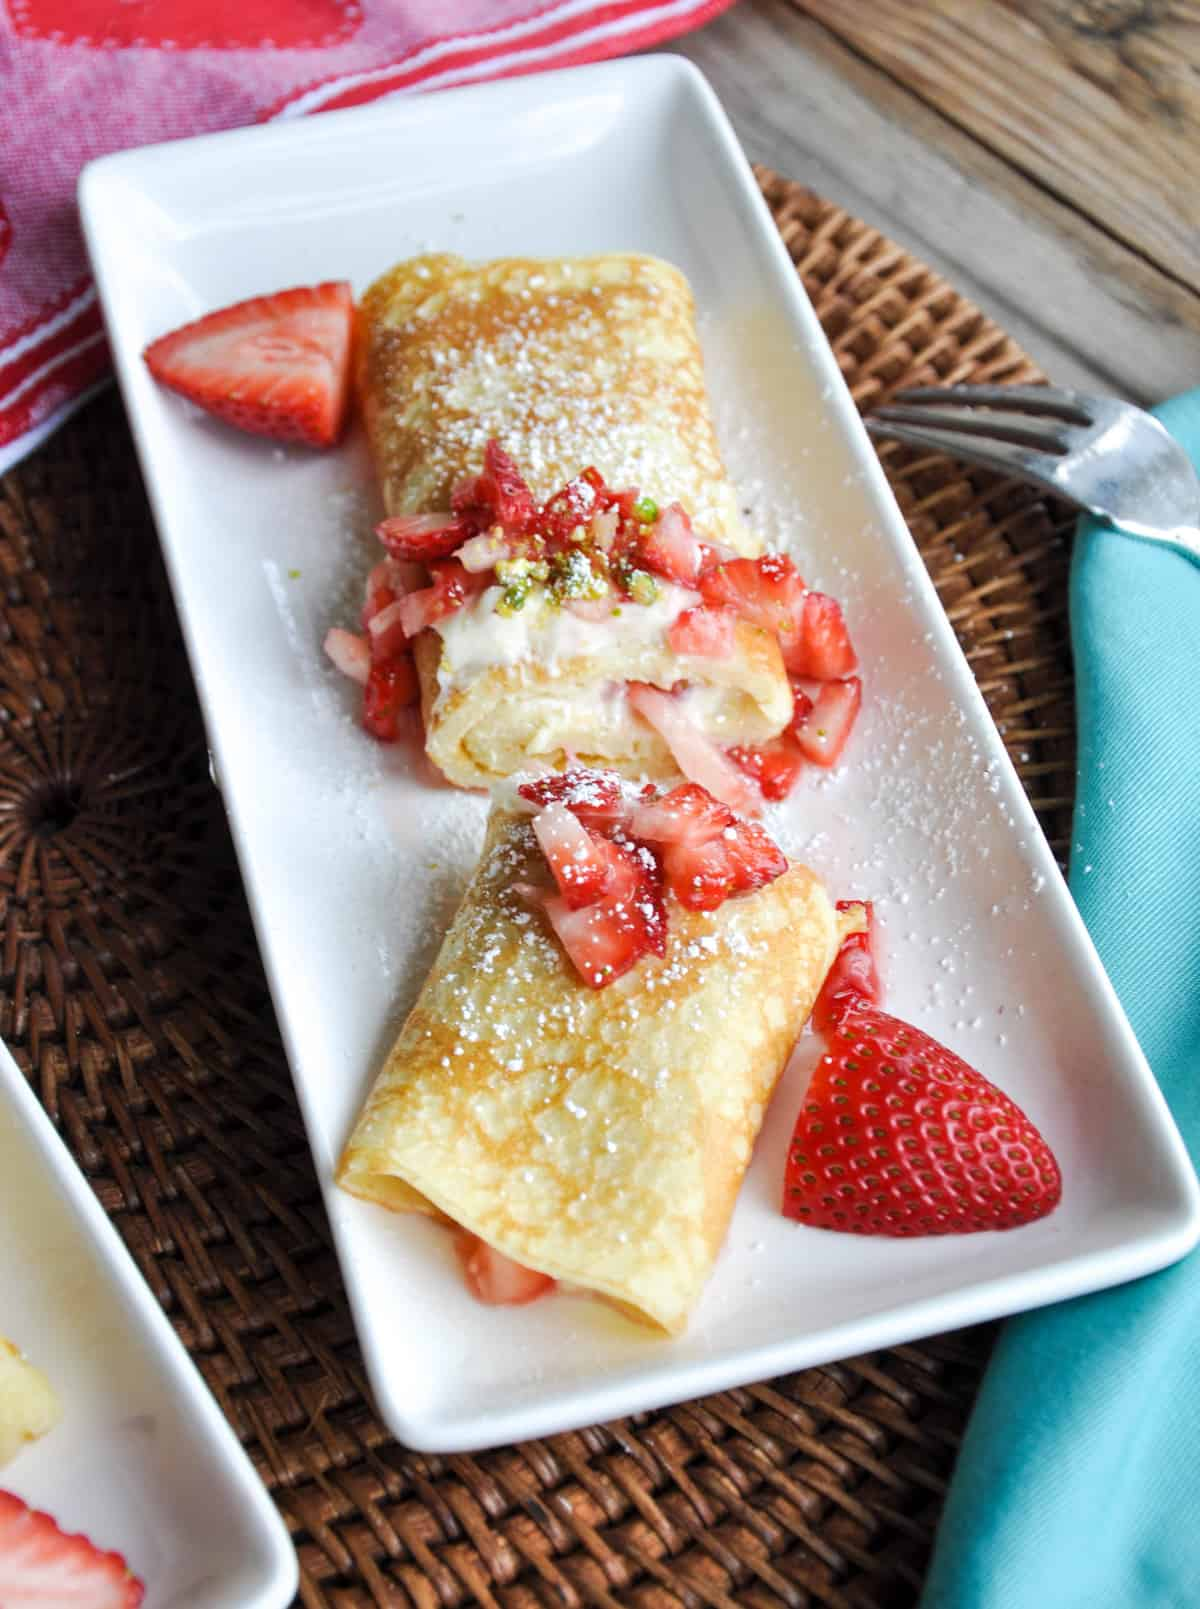 Lemon Creme Crepes with Strawberries and Pistachios